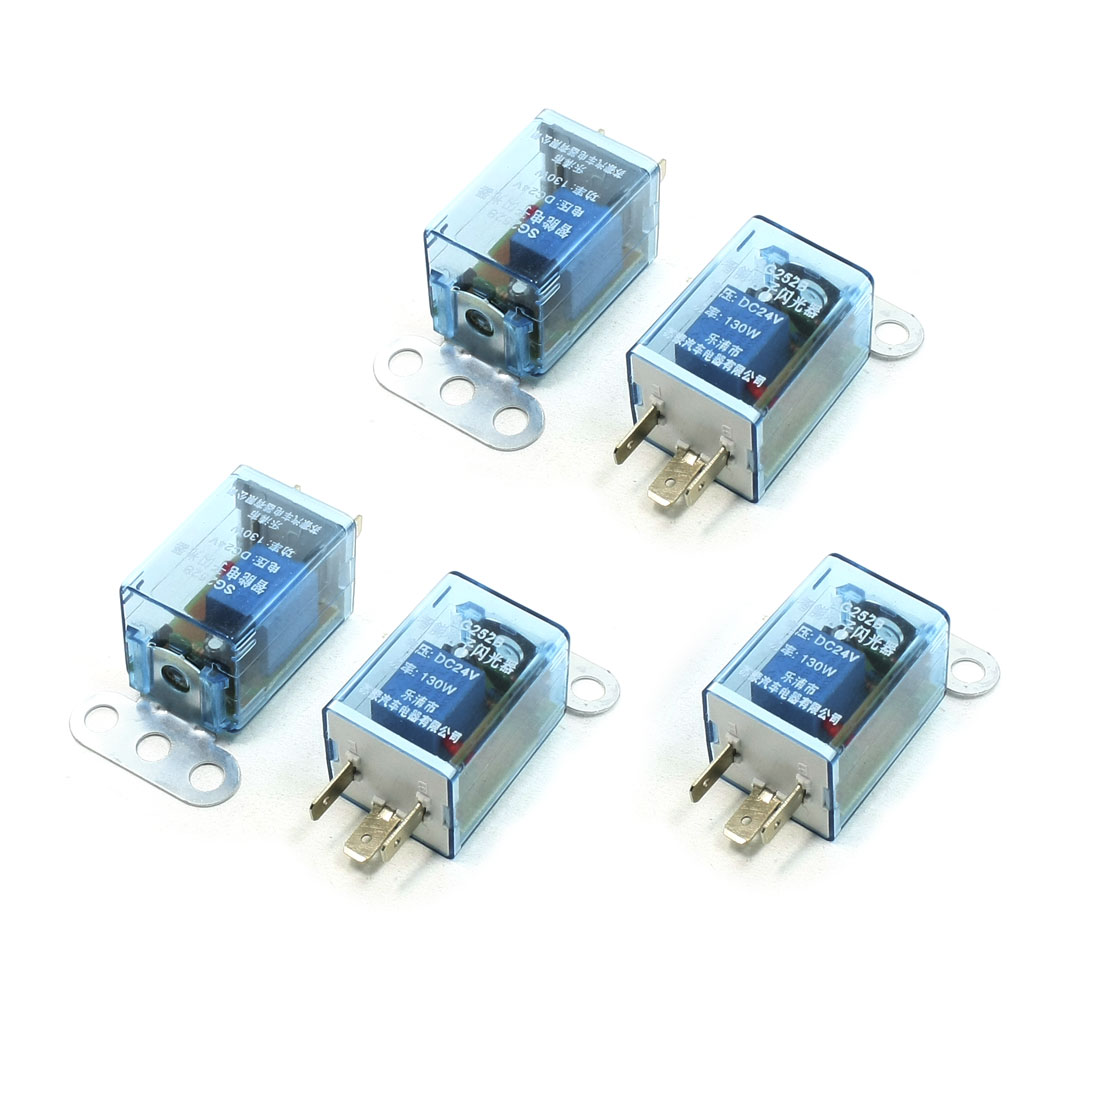 DC 24V 130W 3 Terminal LED Light Fast Blink Flash Auto Car Flasher Relay 5 Pcs